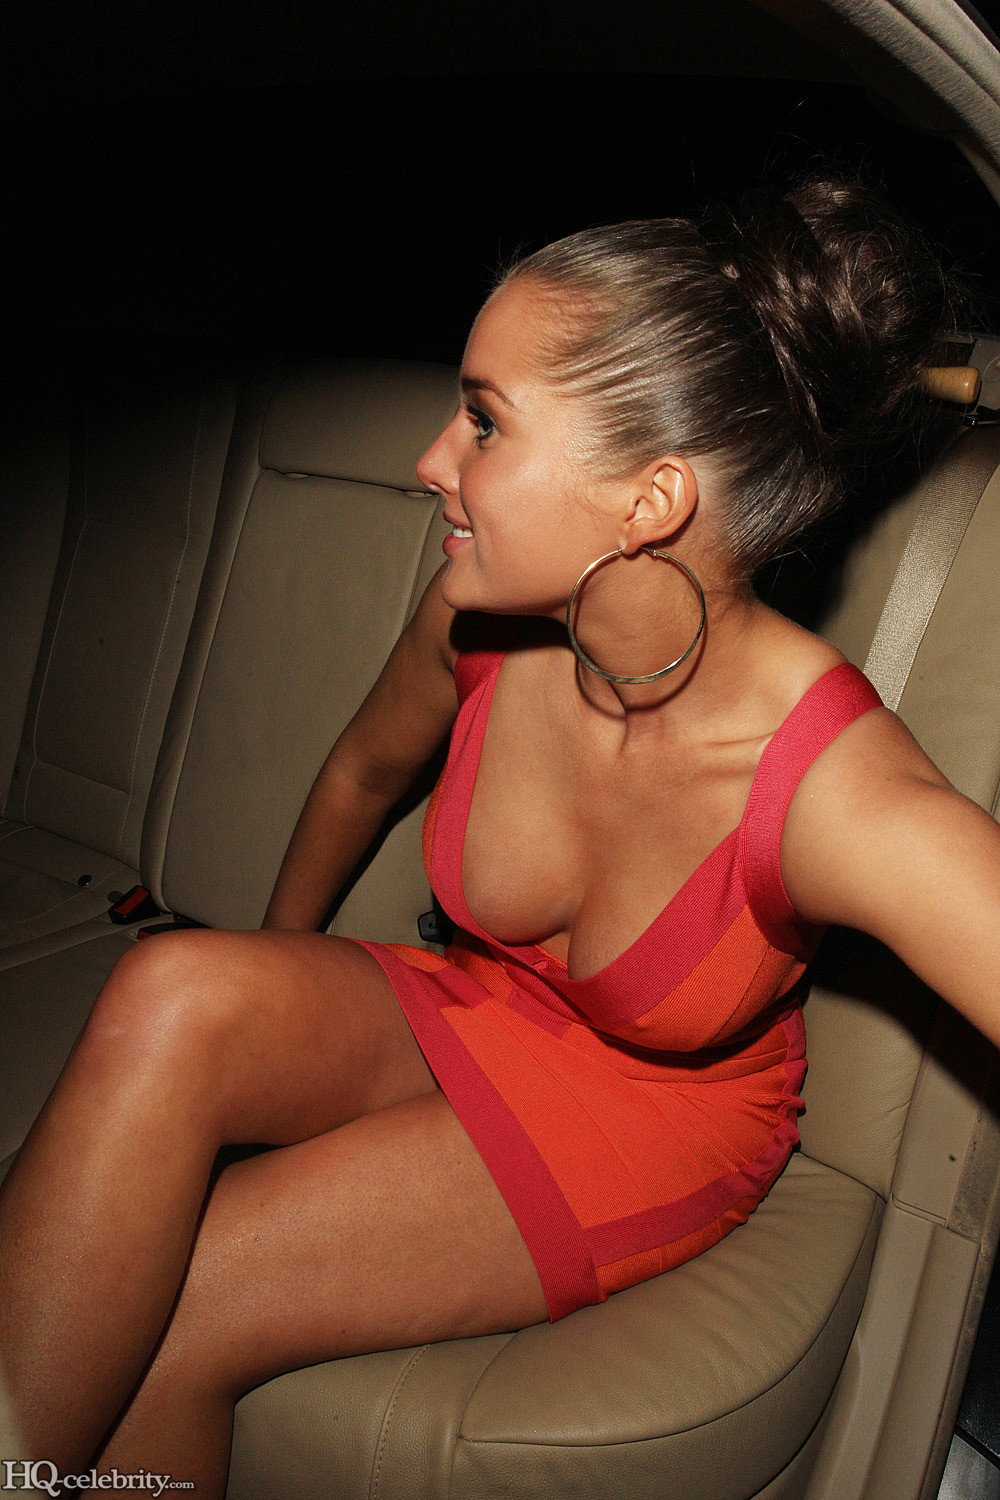 Hot Helen Flanagan showing some cleavage ~ celebs talkies